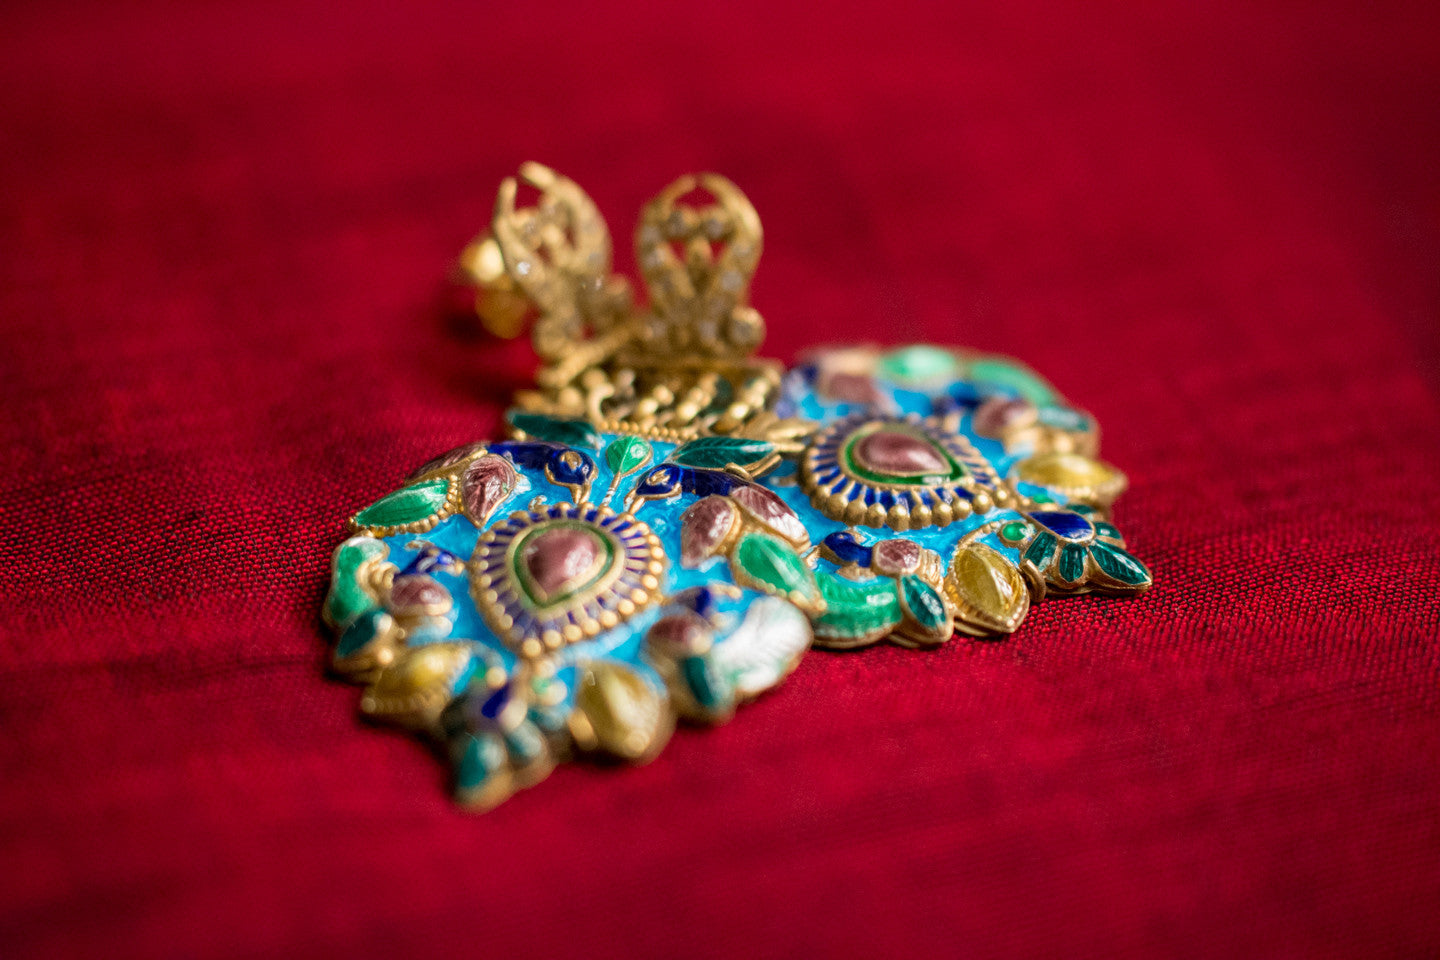 20a473-silver-gold-plated-amrapali-earrings-multi-color-enamel-bird-leaf-raised-design-alternate-view-2